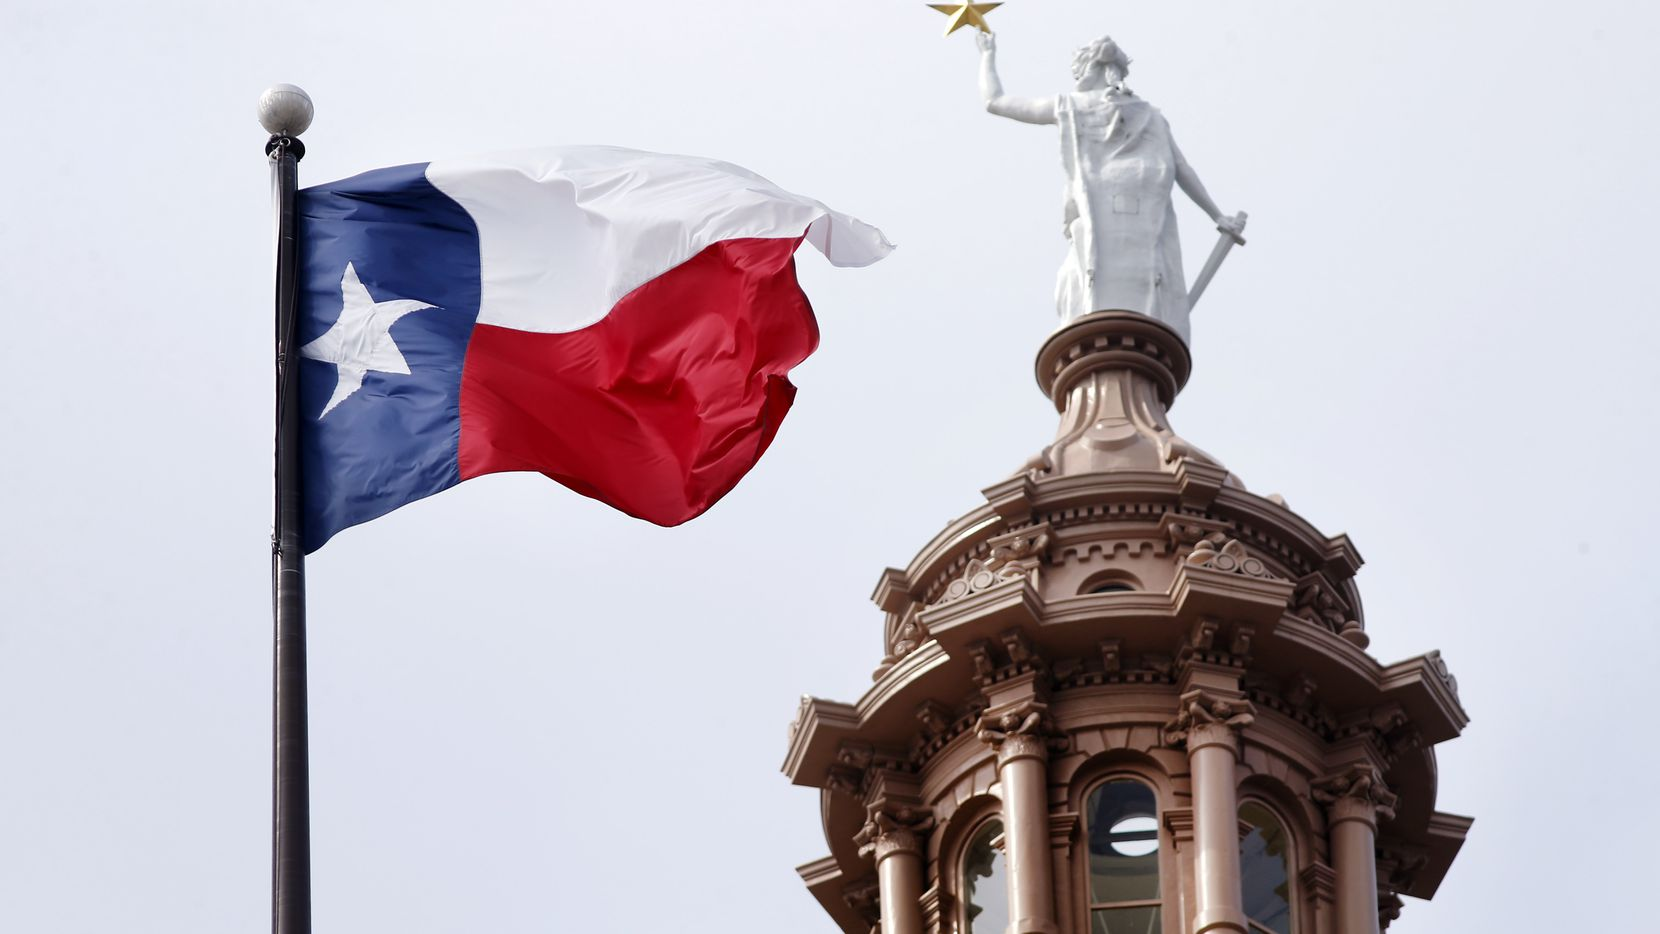 The Texas flag flies over the Texas Capitol in Austin, Texas, Wednesday, May 22, 2019. (Tom Fox/The Dallas Morning News)